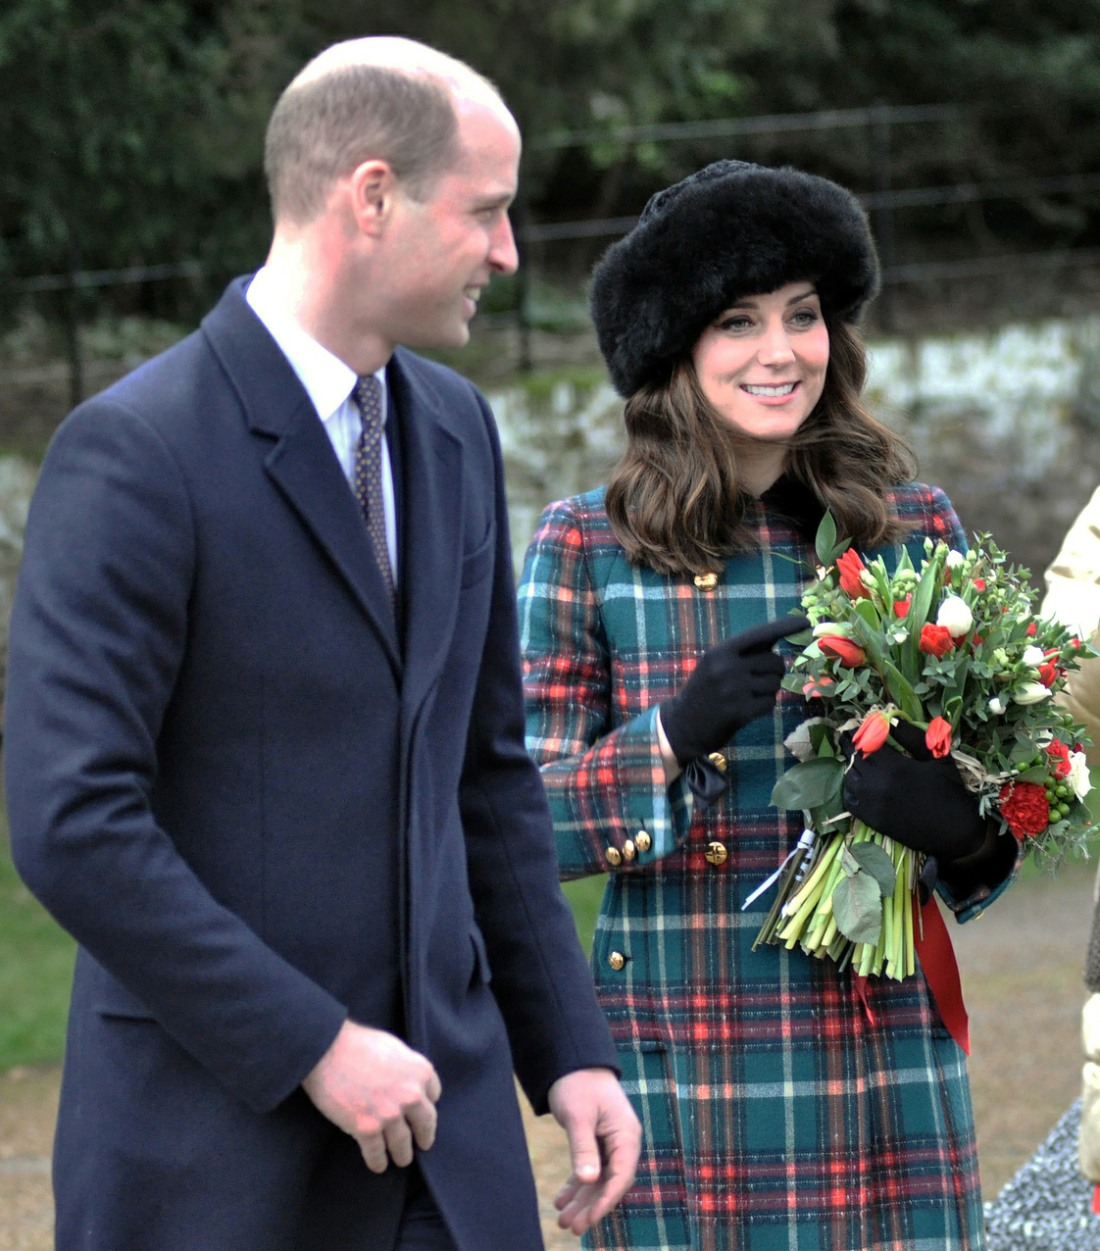 Prince William, Duke of Cambridge, and Catherine, Duchess of Cambridge, at Sandringham Church for the royal family's traditional Christmas Day service